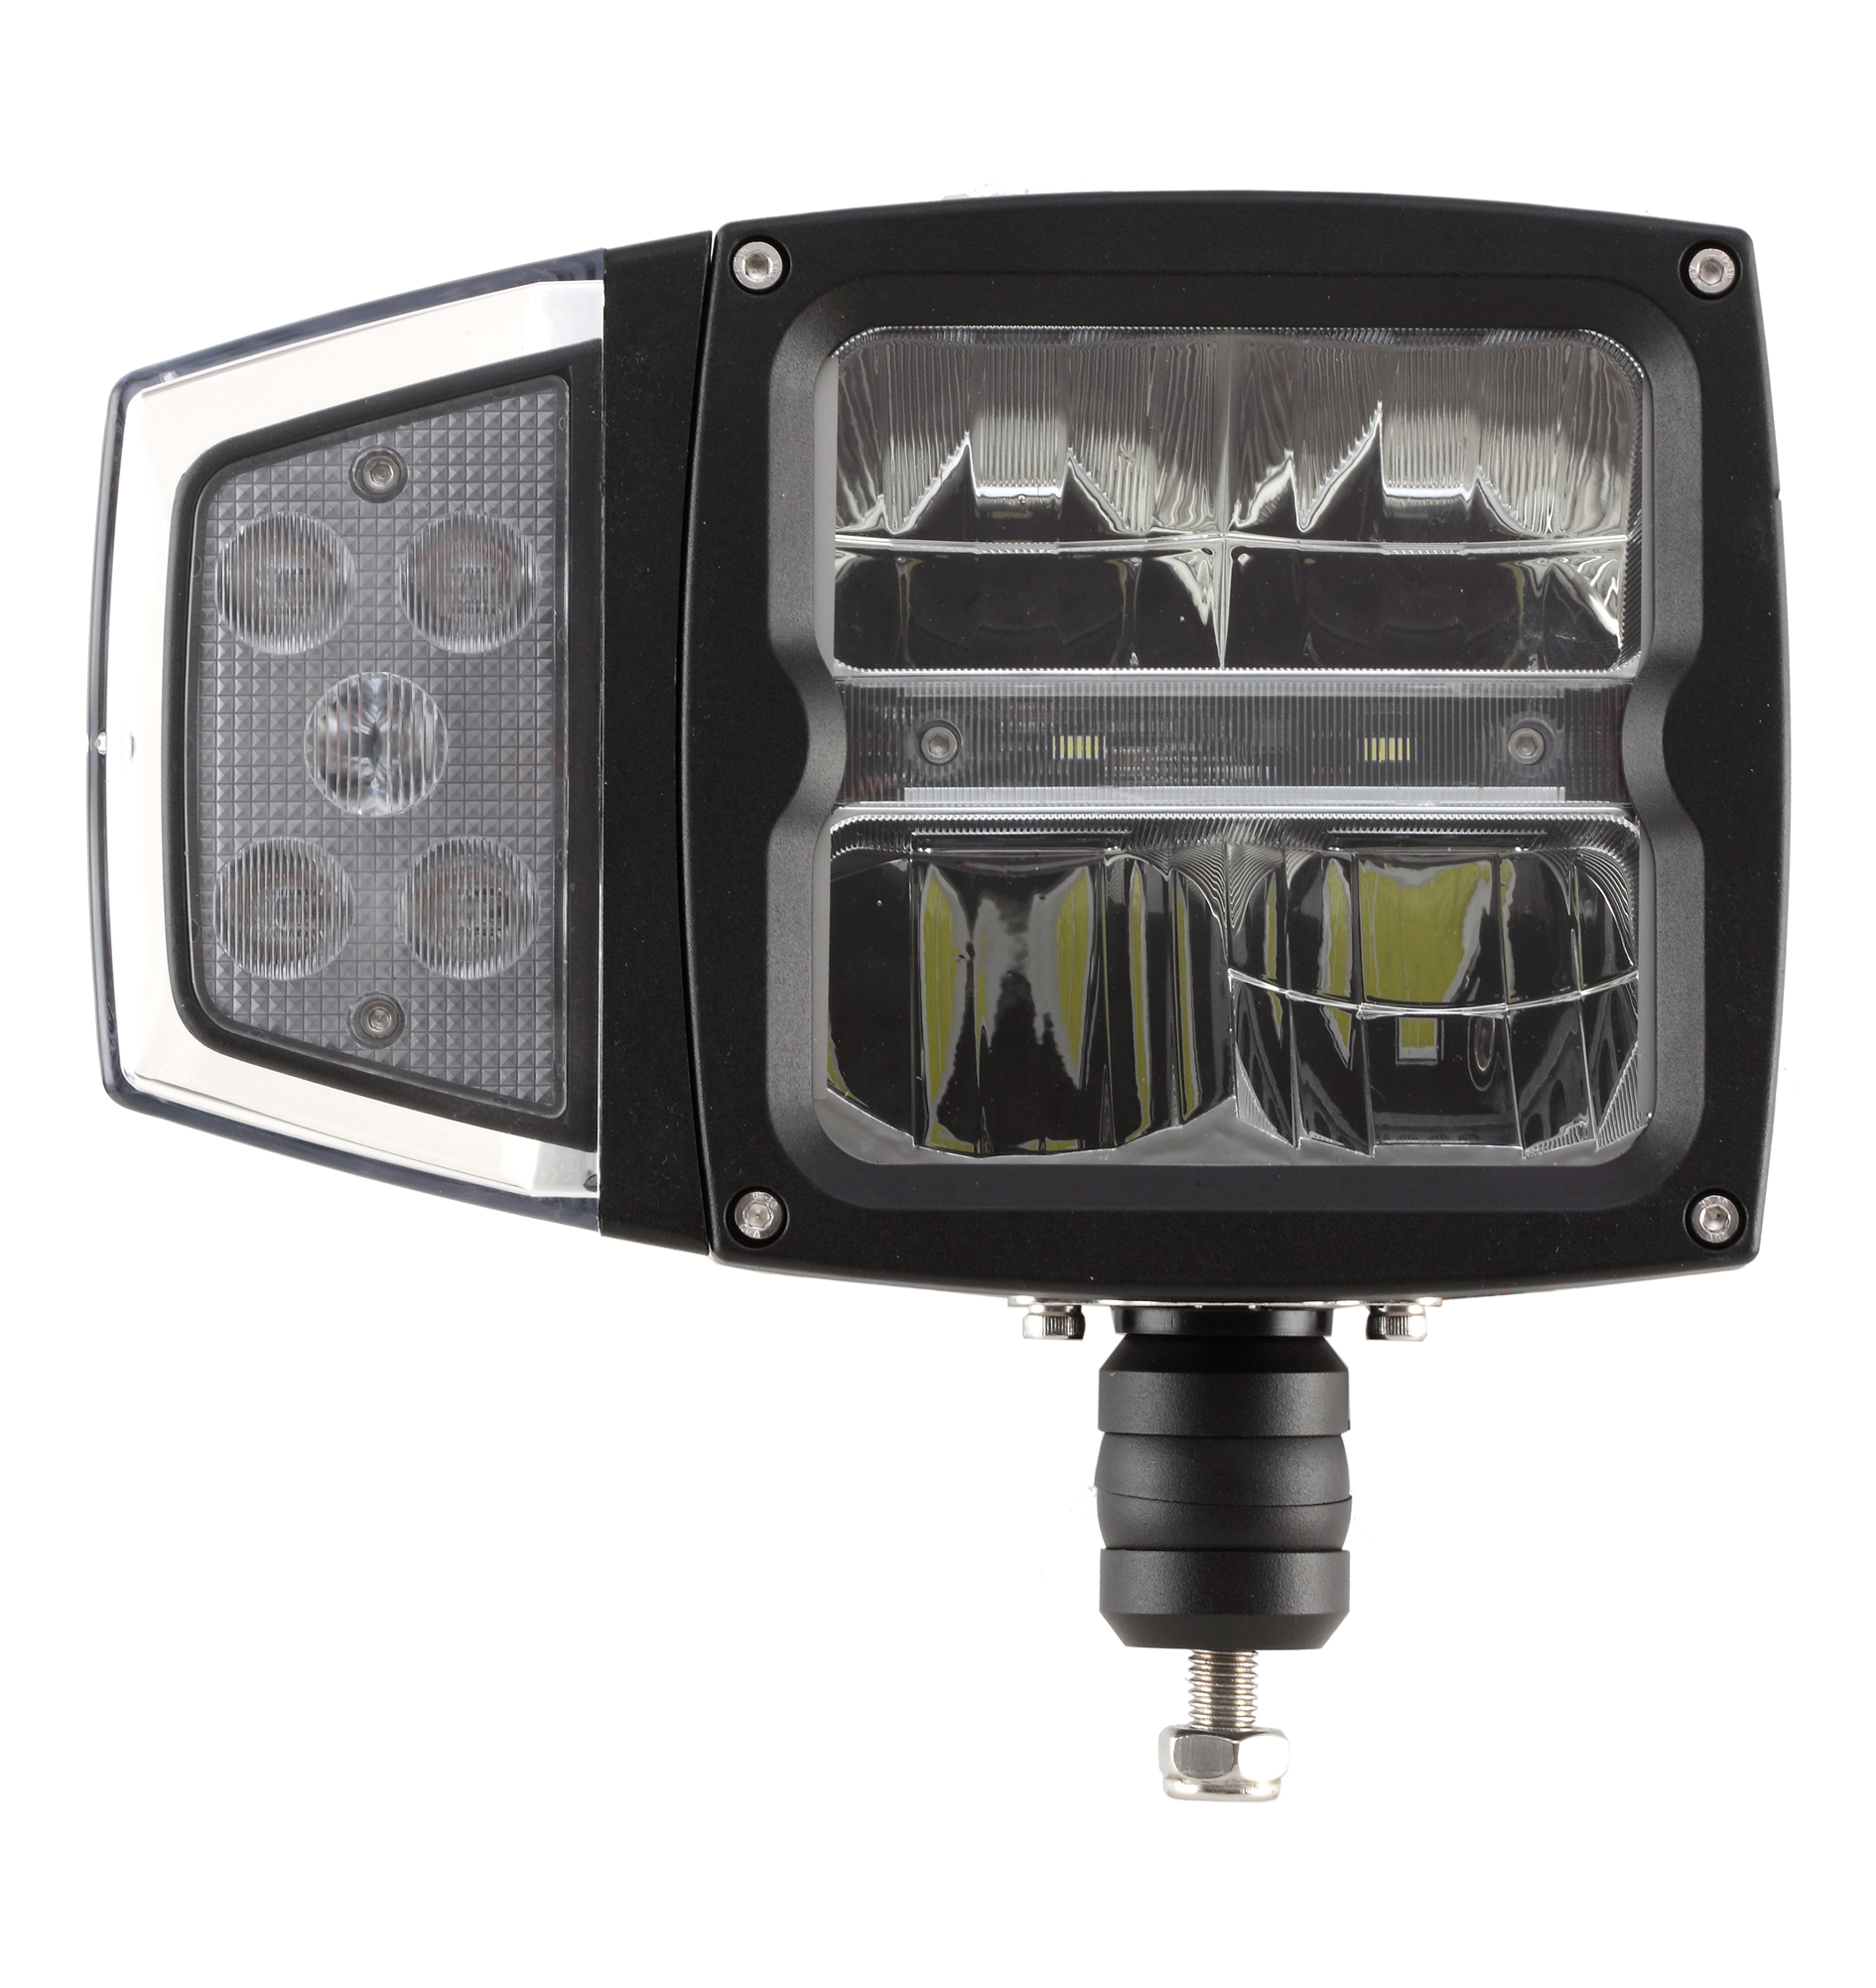 Snow Plow Light With Heated Lens 12 30v